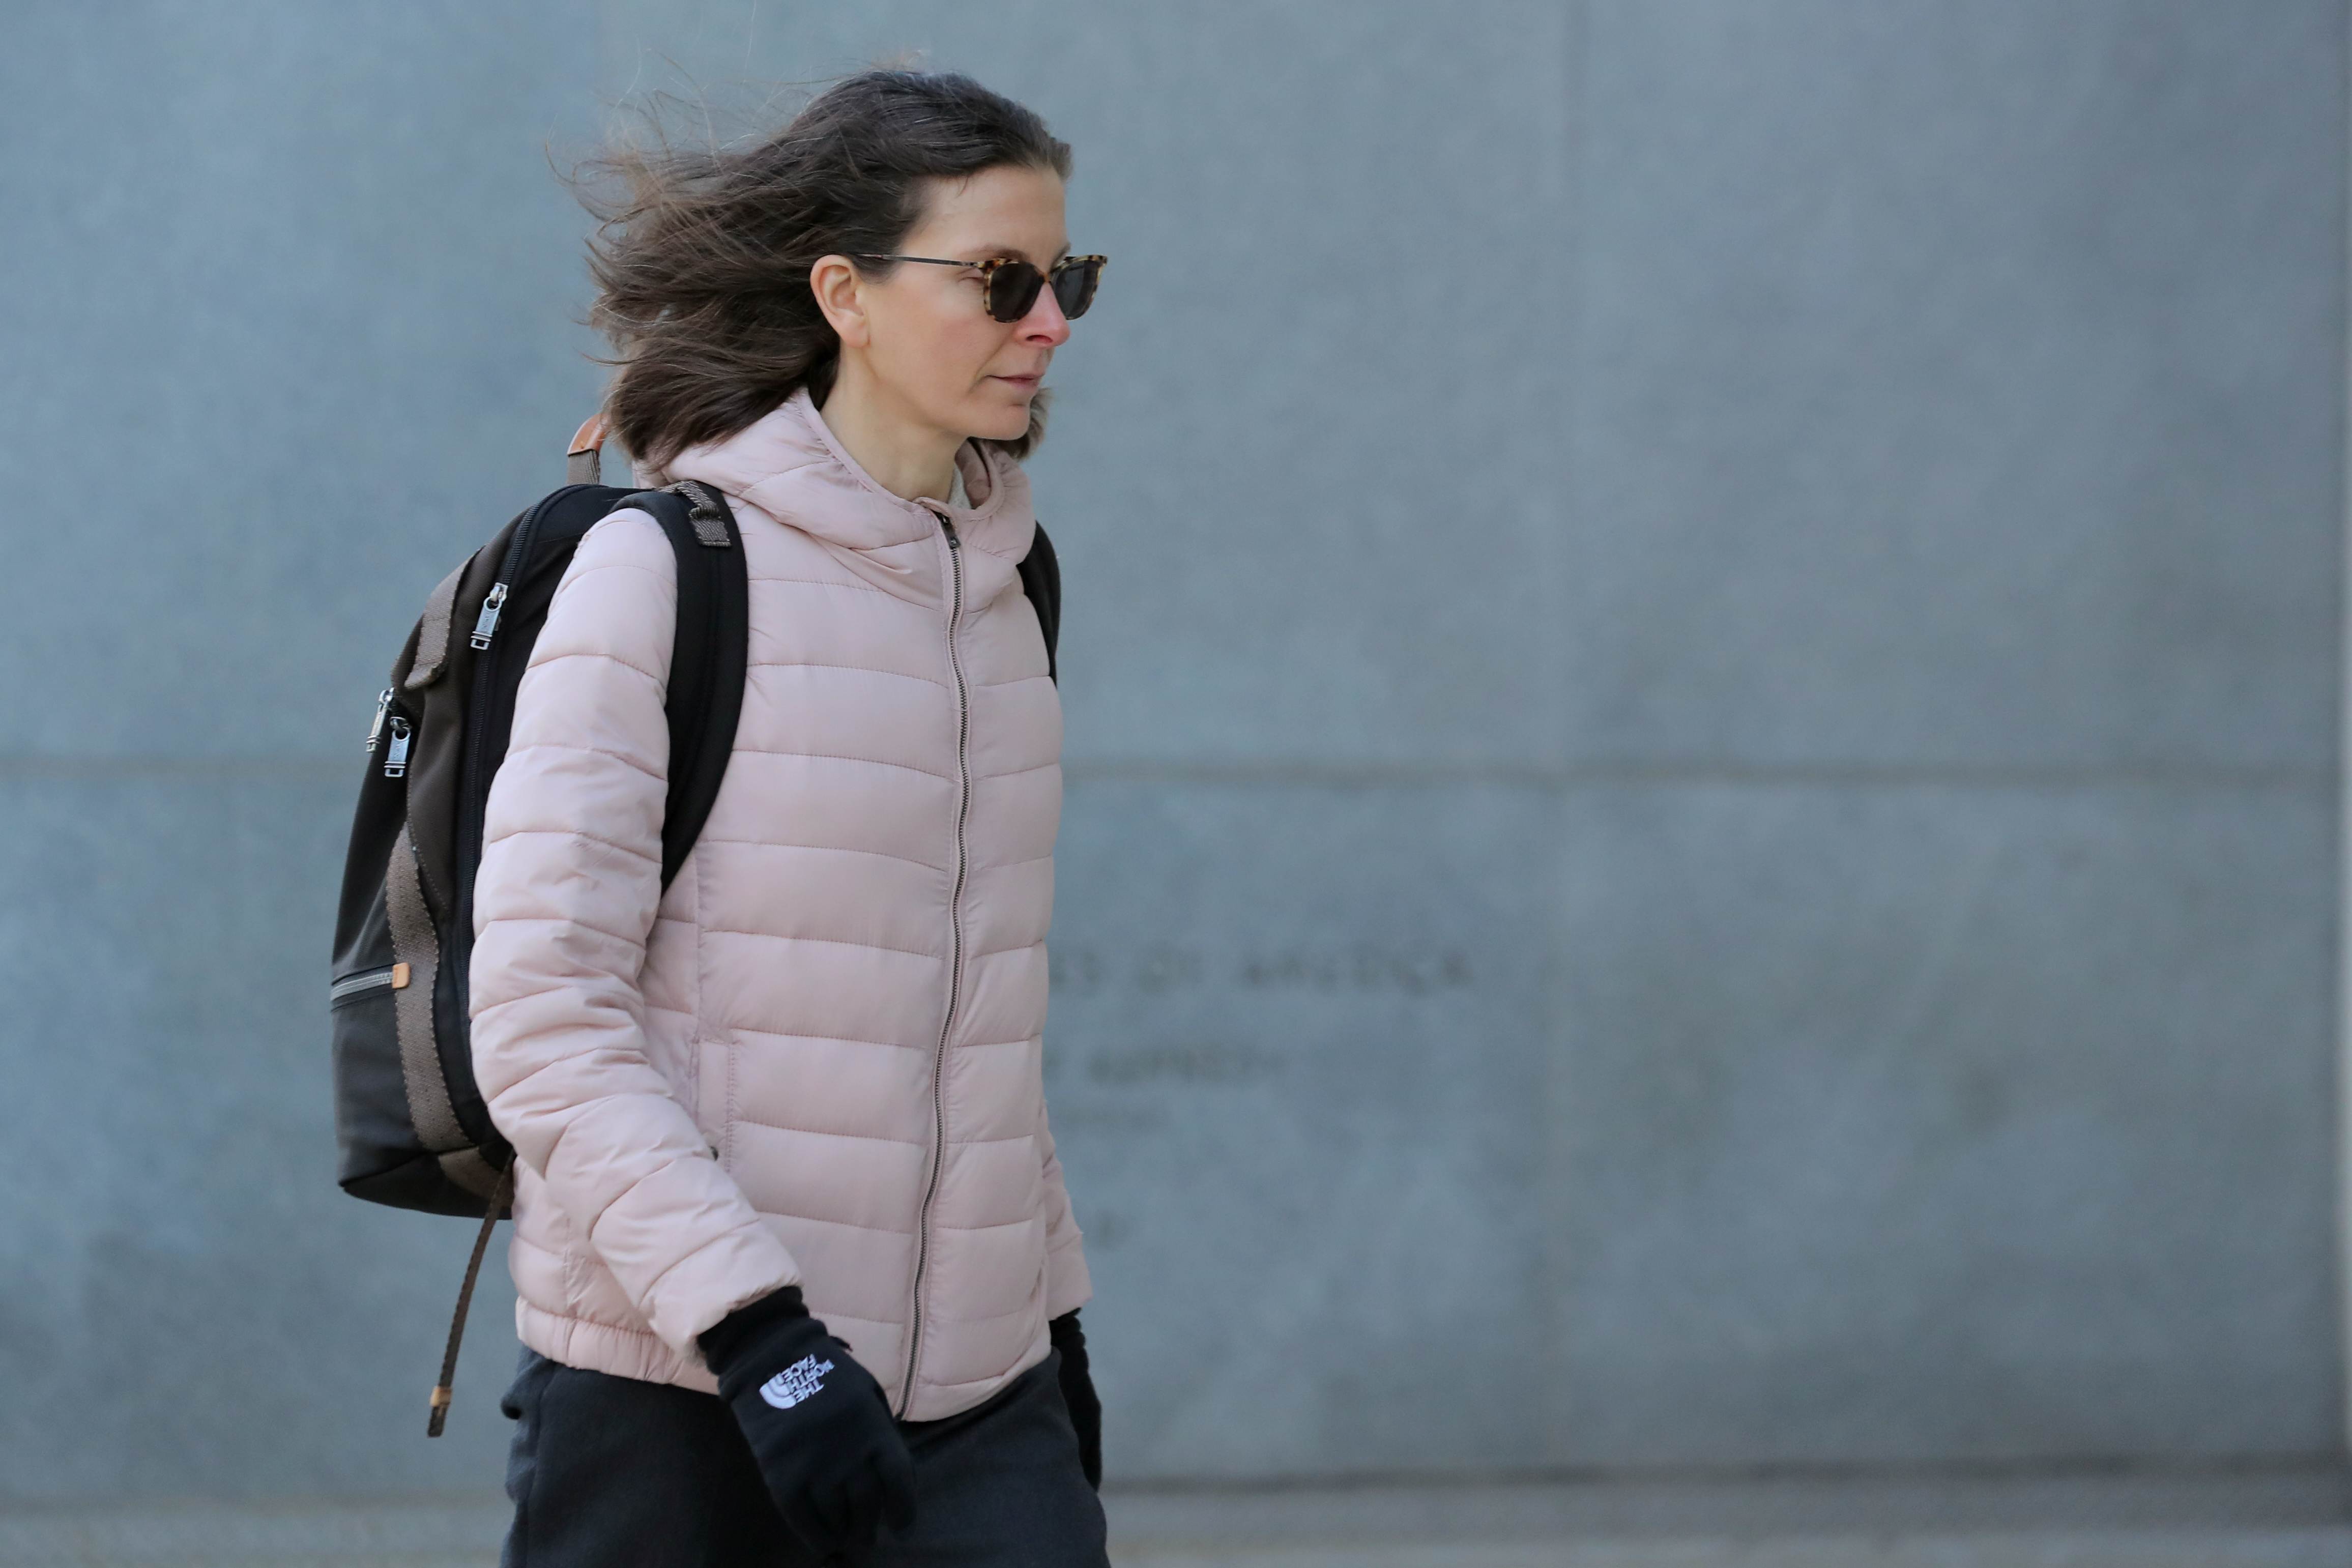 Clare Bronfman, an heiress of the Seagram's liquor empire, arrives at the Brooklyn Federal Courthouse, for her trail regarding sex trafficking and racketeering related to the Nxivm cult in the Brooklyn borough of New York, U.S., January 9, 2019. REUTERS/Brendan McDermid